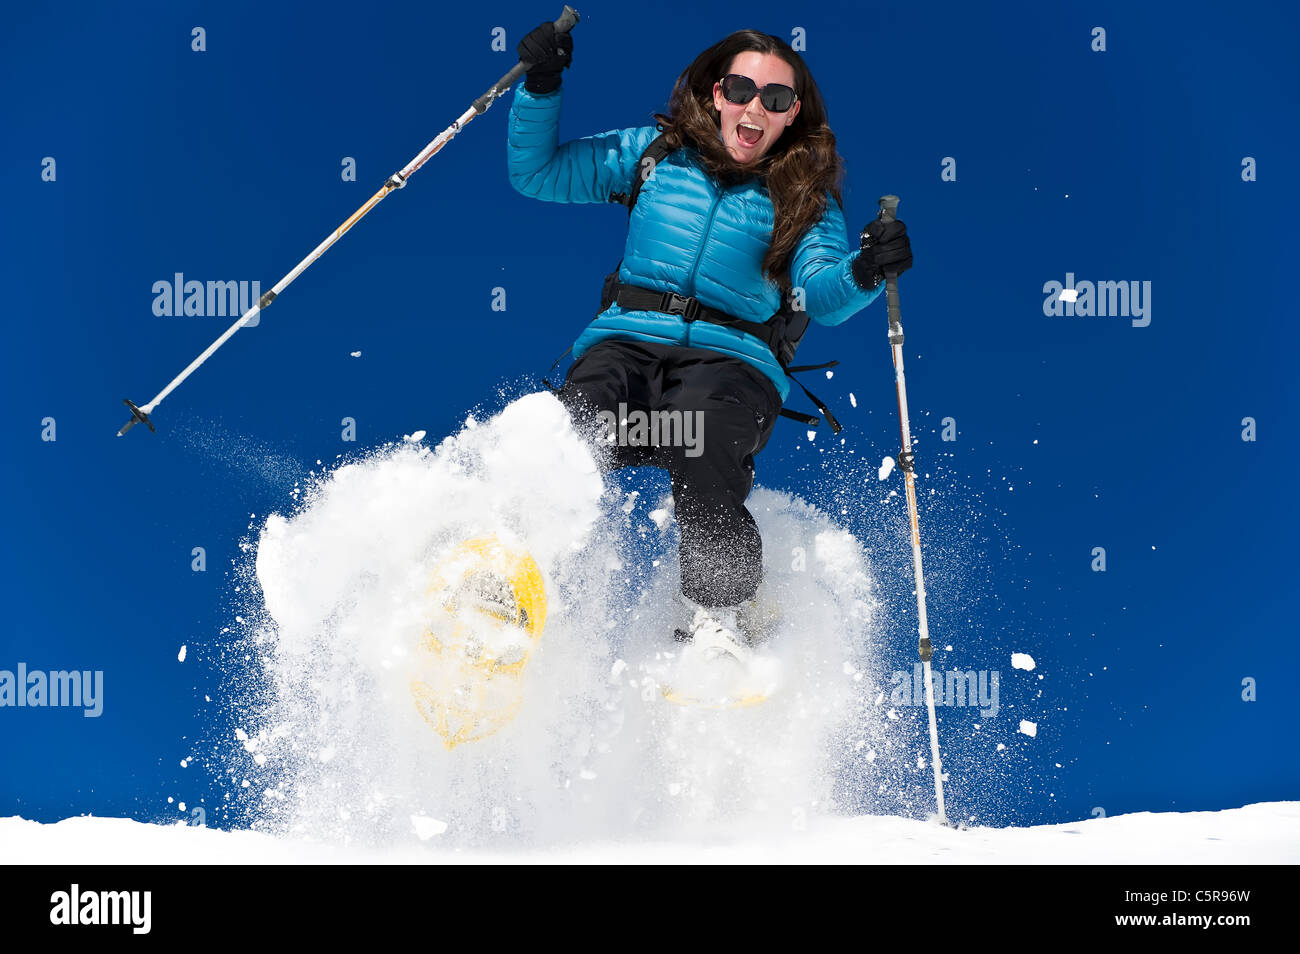 A woman snowshoeing and having fun in fresh powder snow. - Stock Image